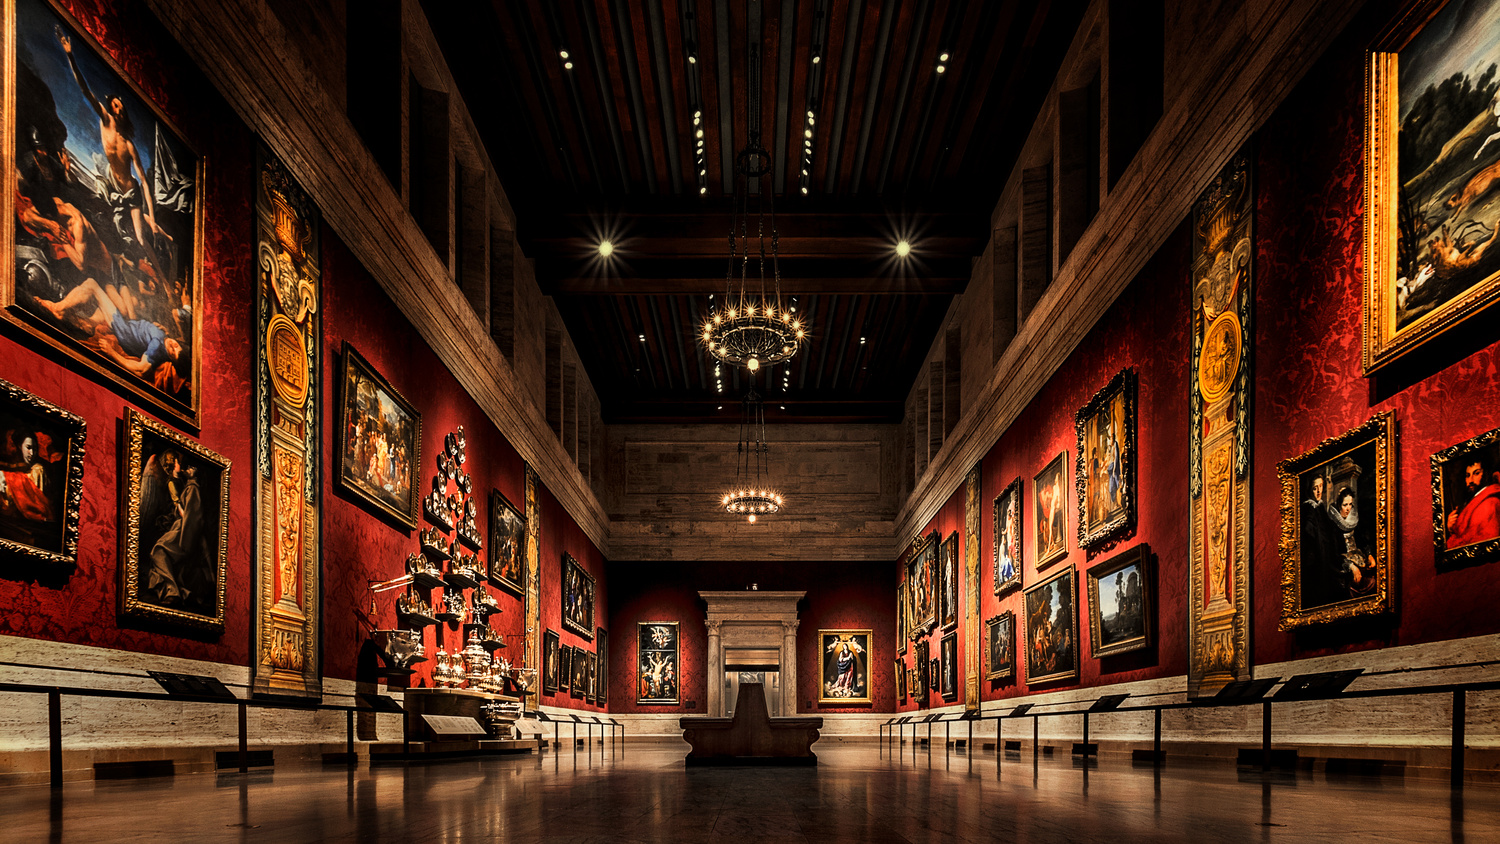 Museum of Fine Arts - Boston by Stas F